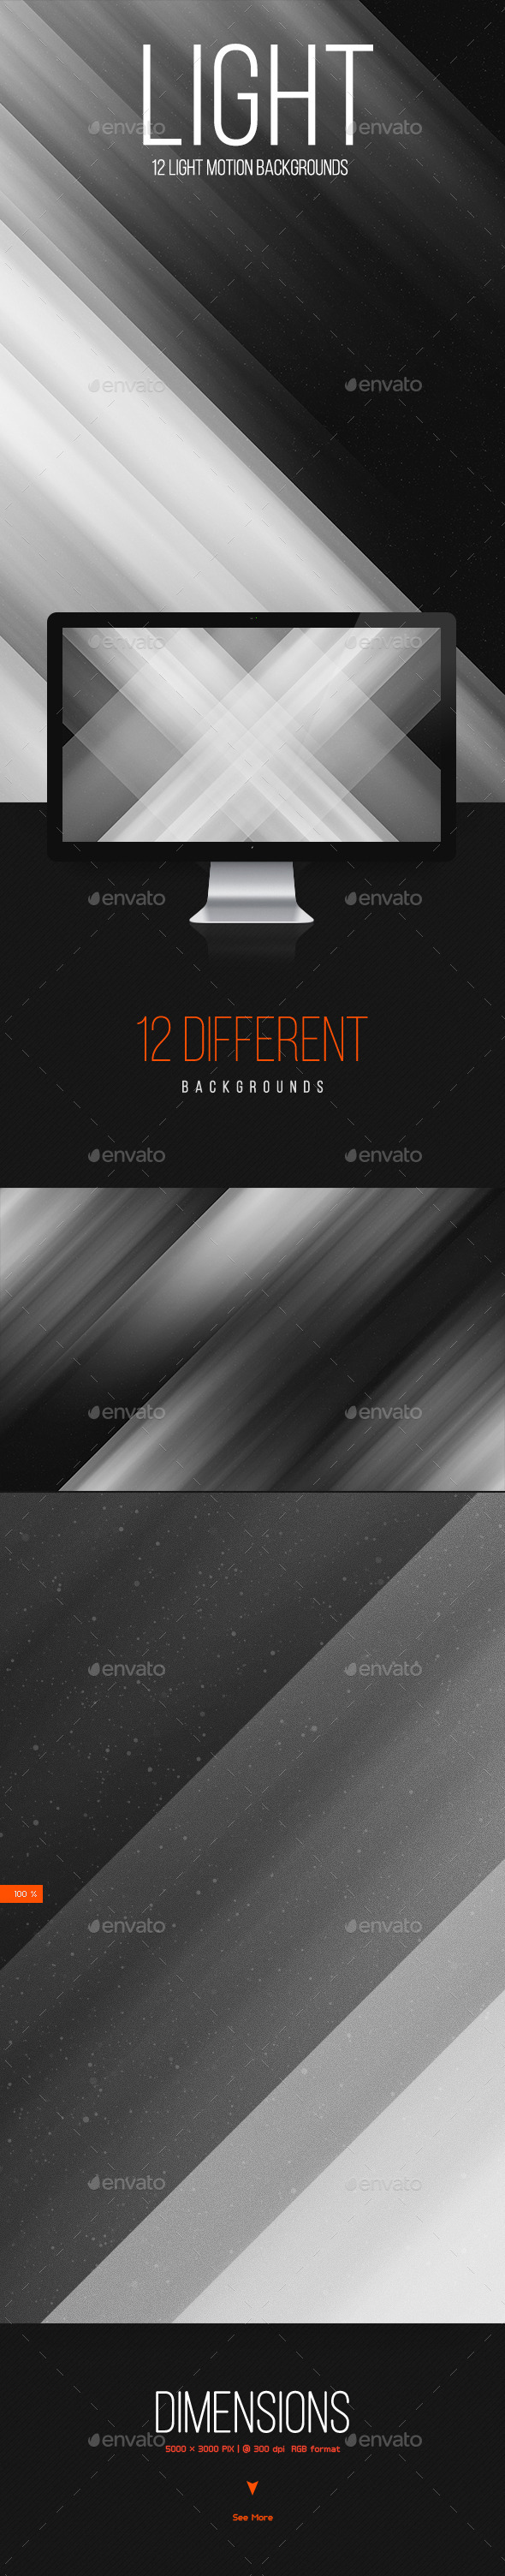 GraphicRiver Light Motion Backgrounds 10357731